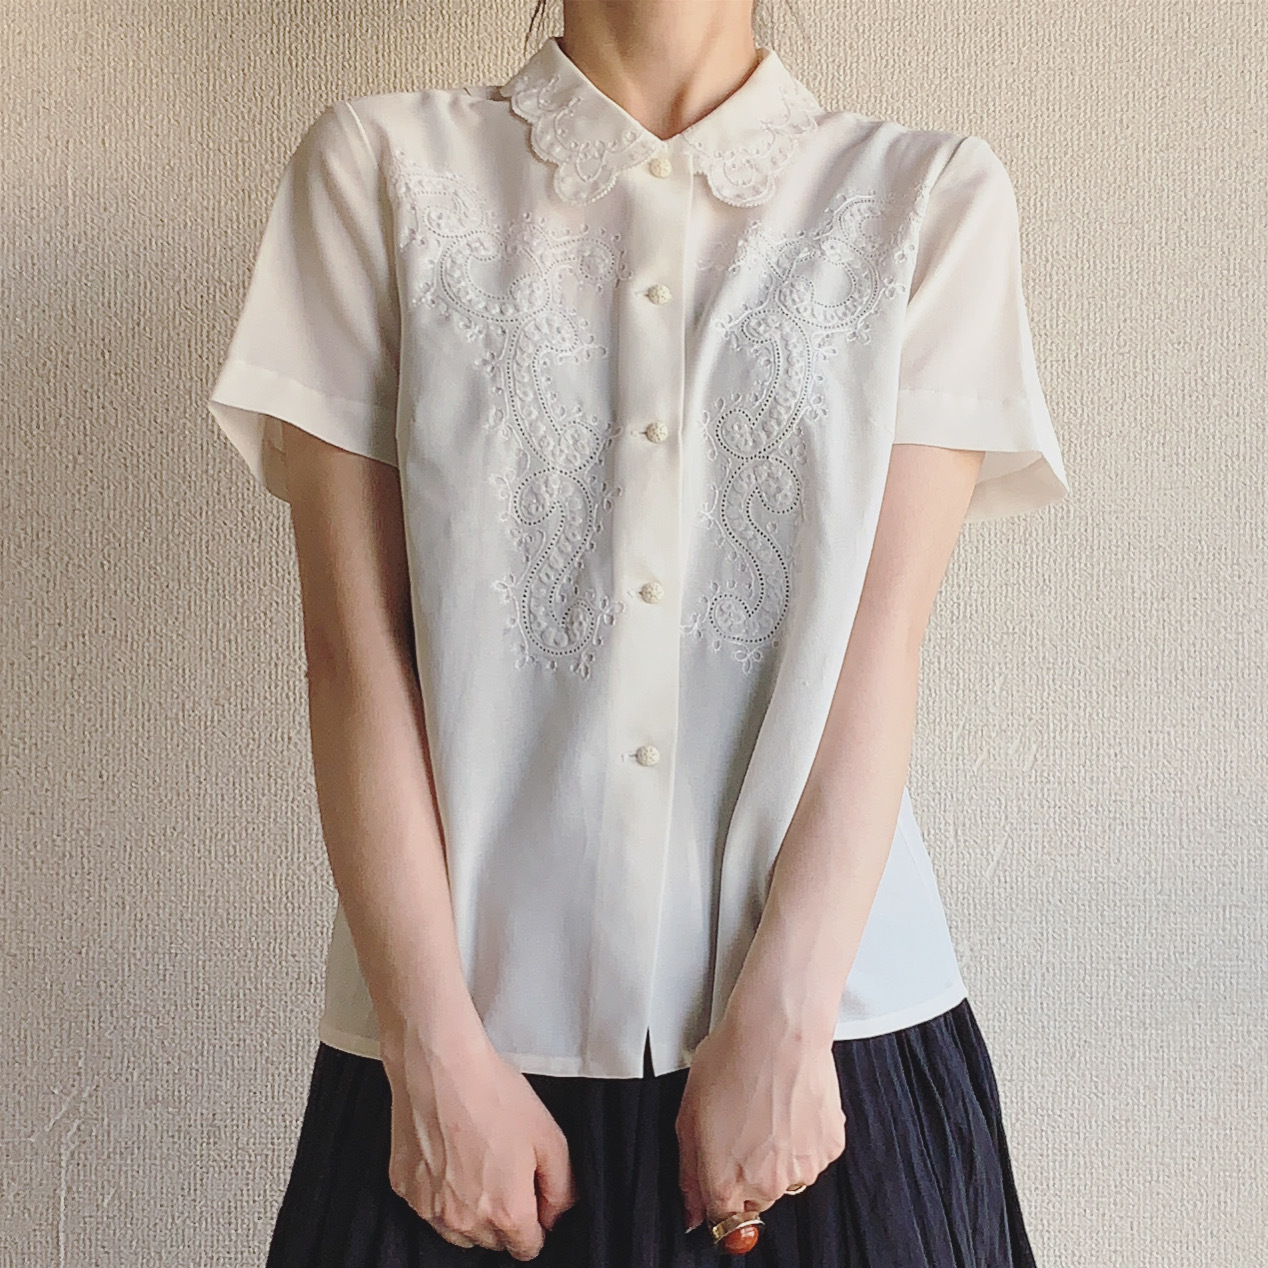 vintage lace embroidery tops